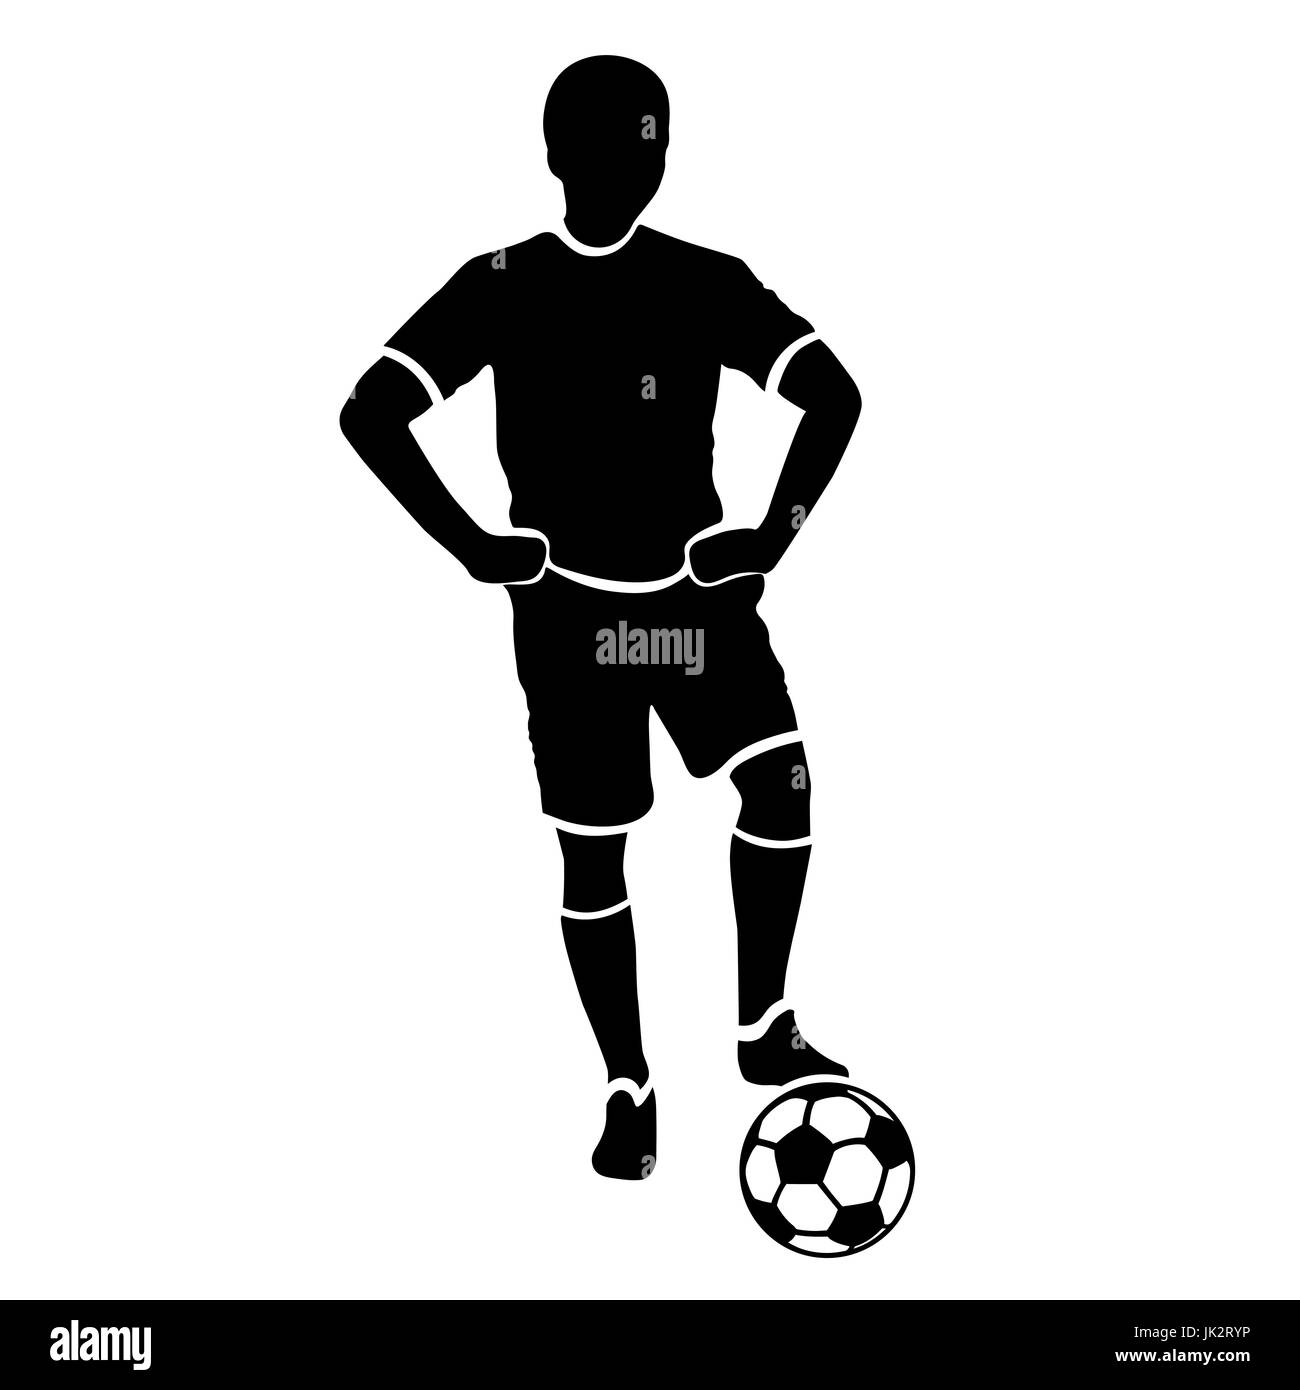 footballer silhouette black football player outline with a ball isolated on white background